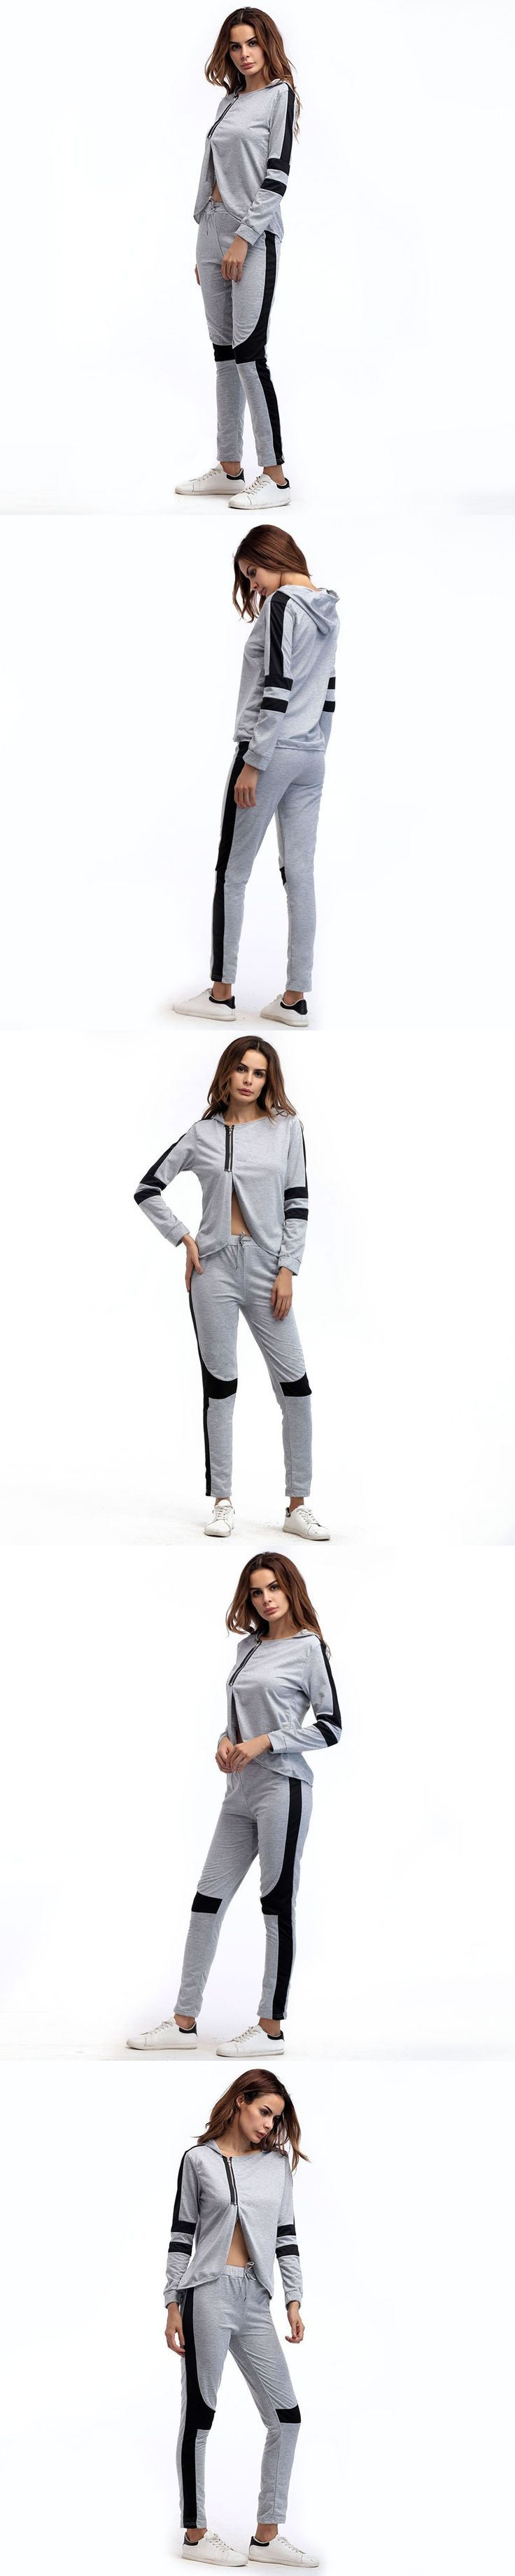 2017 Hot New Long-sleeved Ladies Hooded Autumn Sportswear Fashion Casual Suit Irregular Short Jacket Stripe Gray Large Size